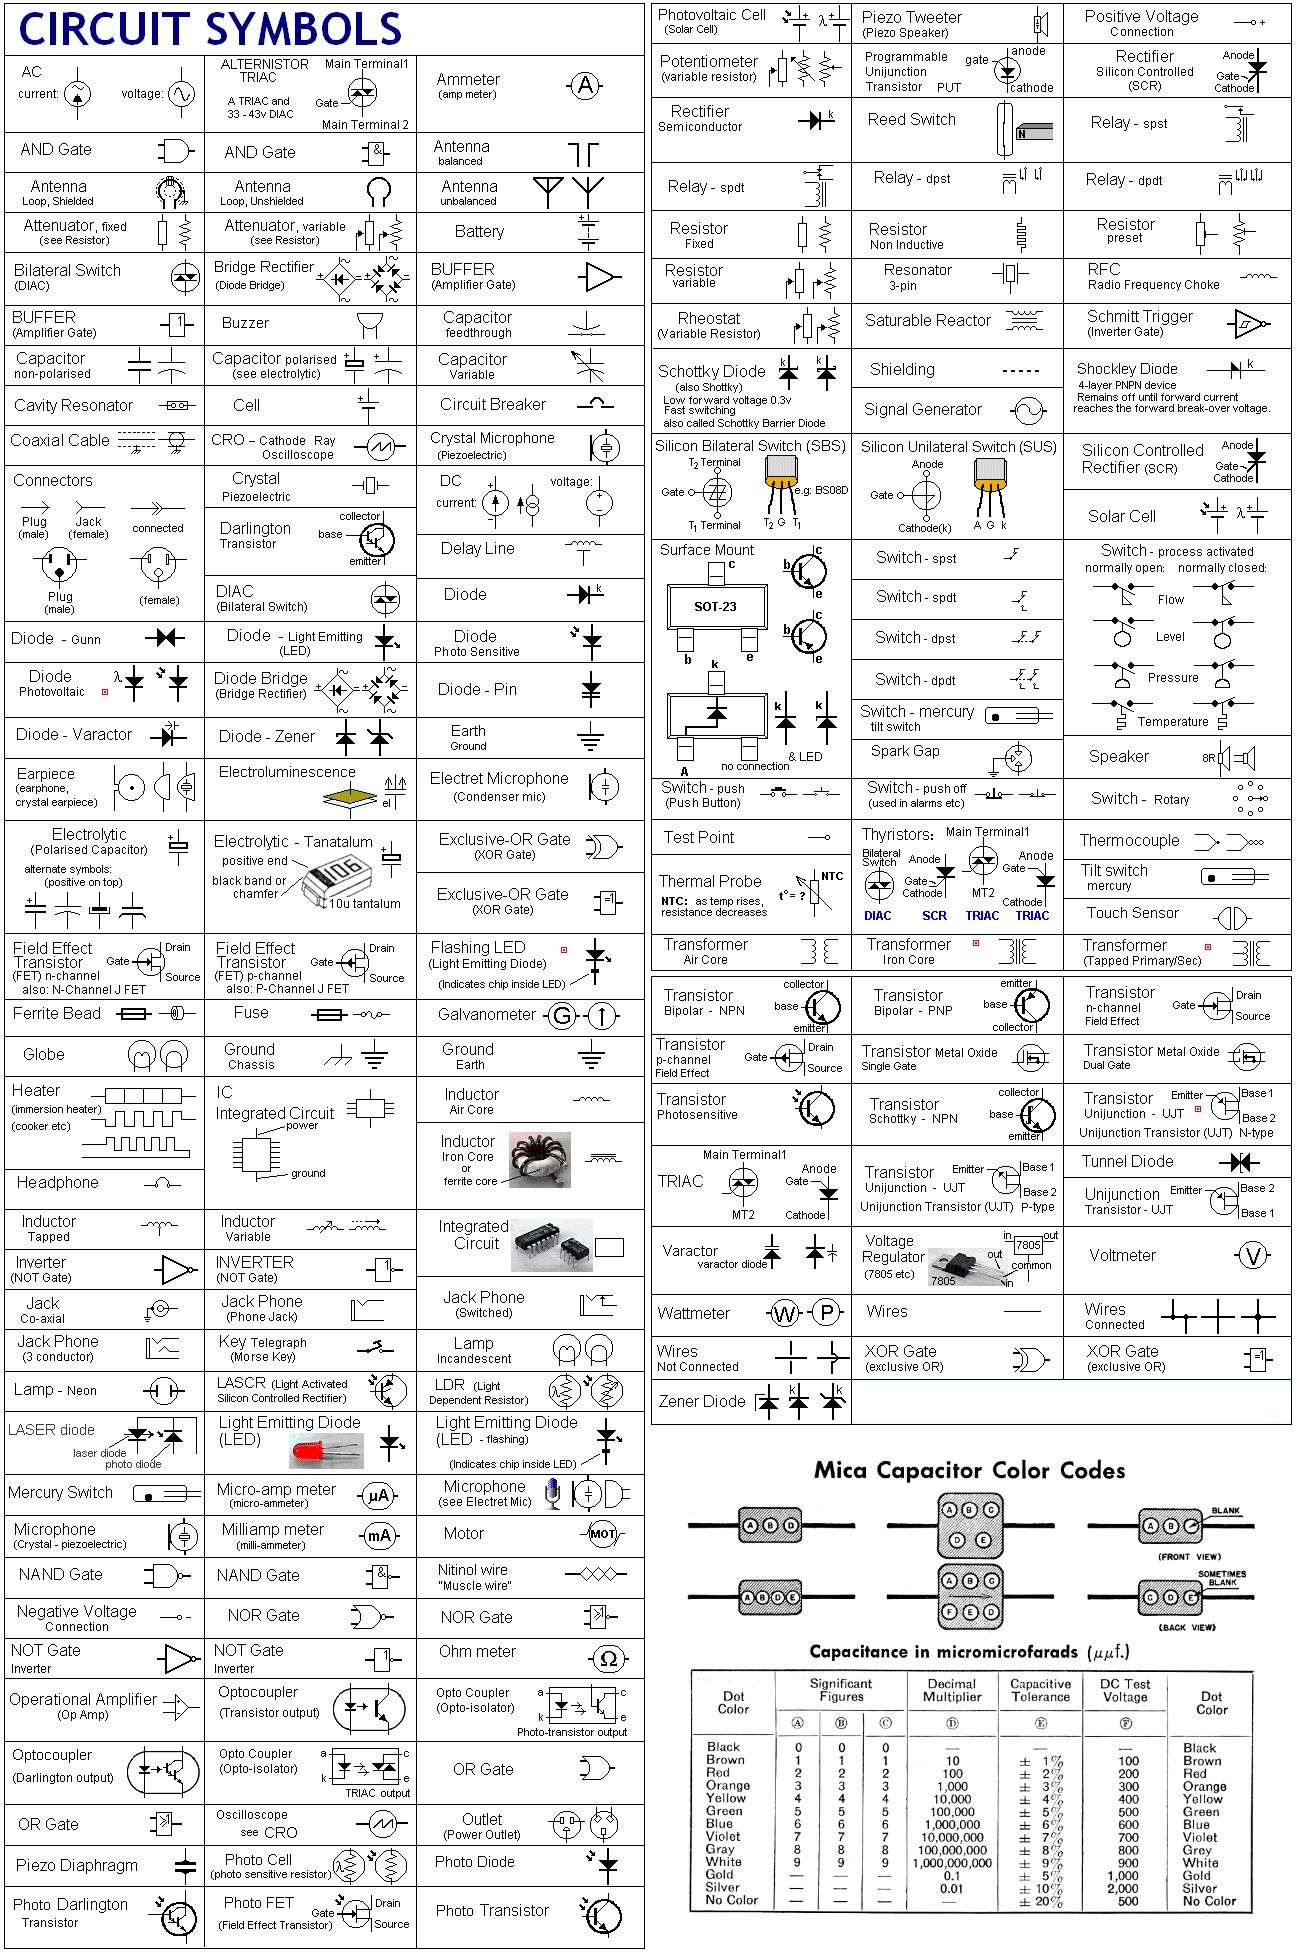 Best 25 Electrical symbols ideas on Pinterest   Electrical Engineering, Electrical diagram and